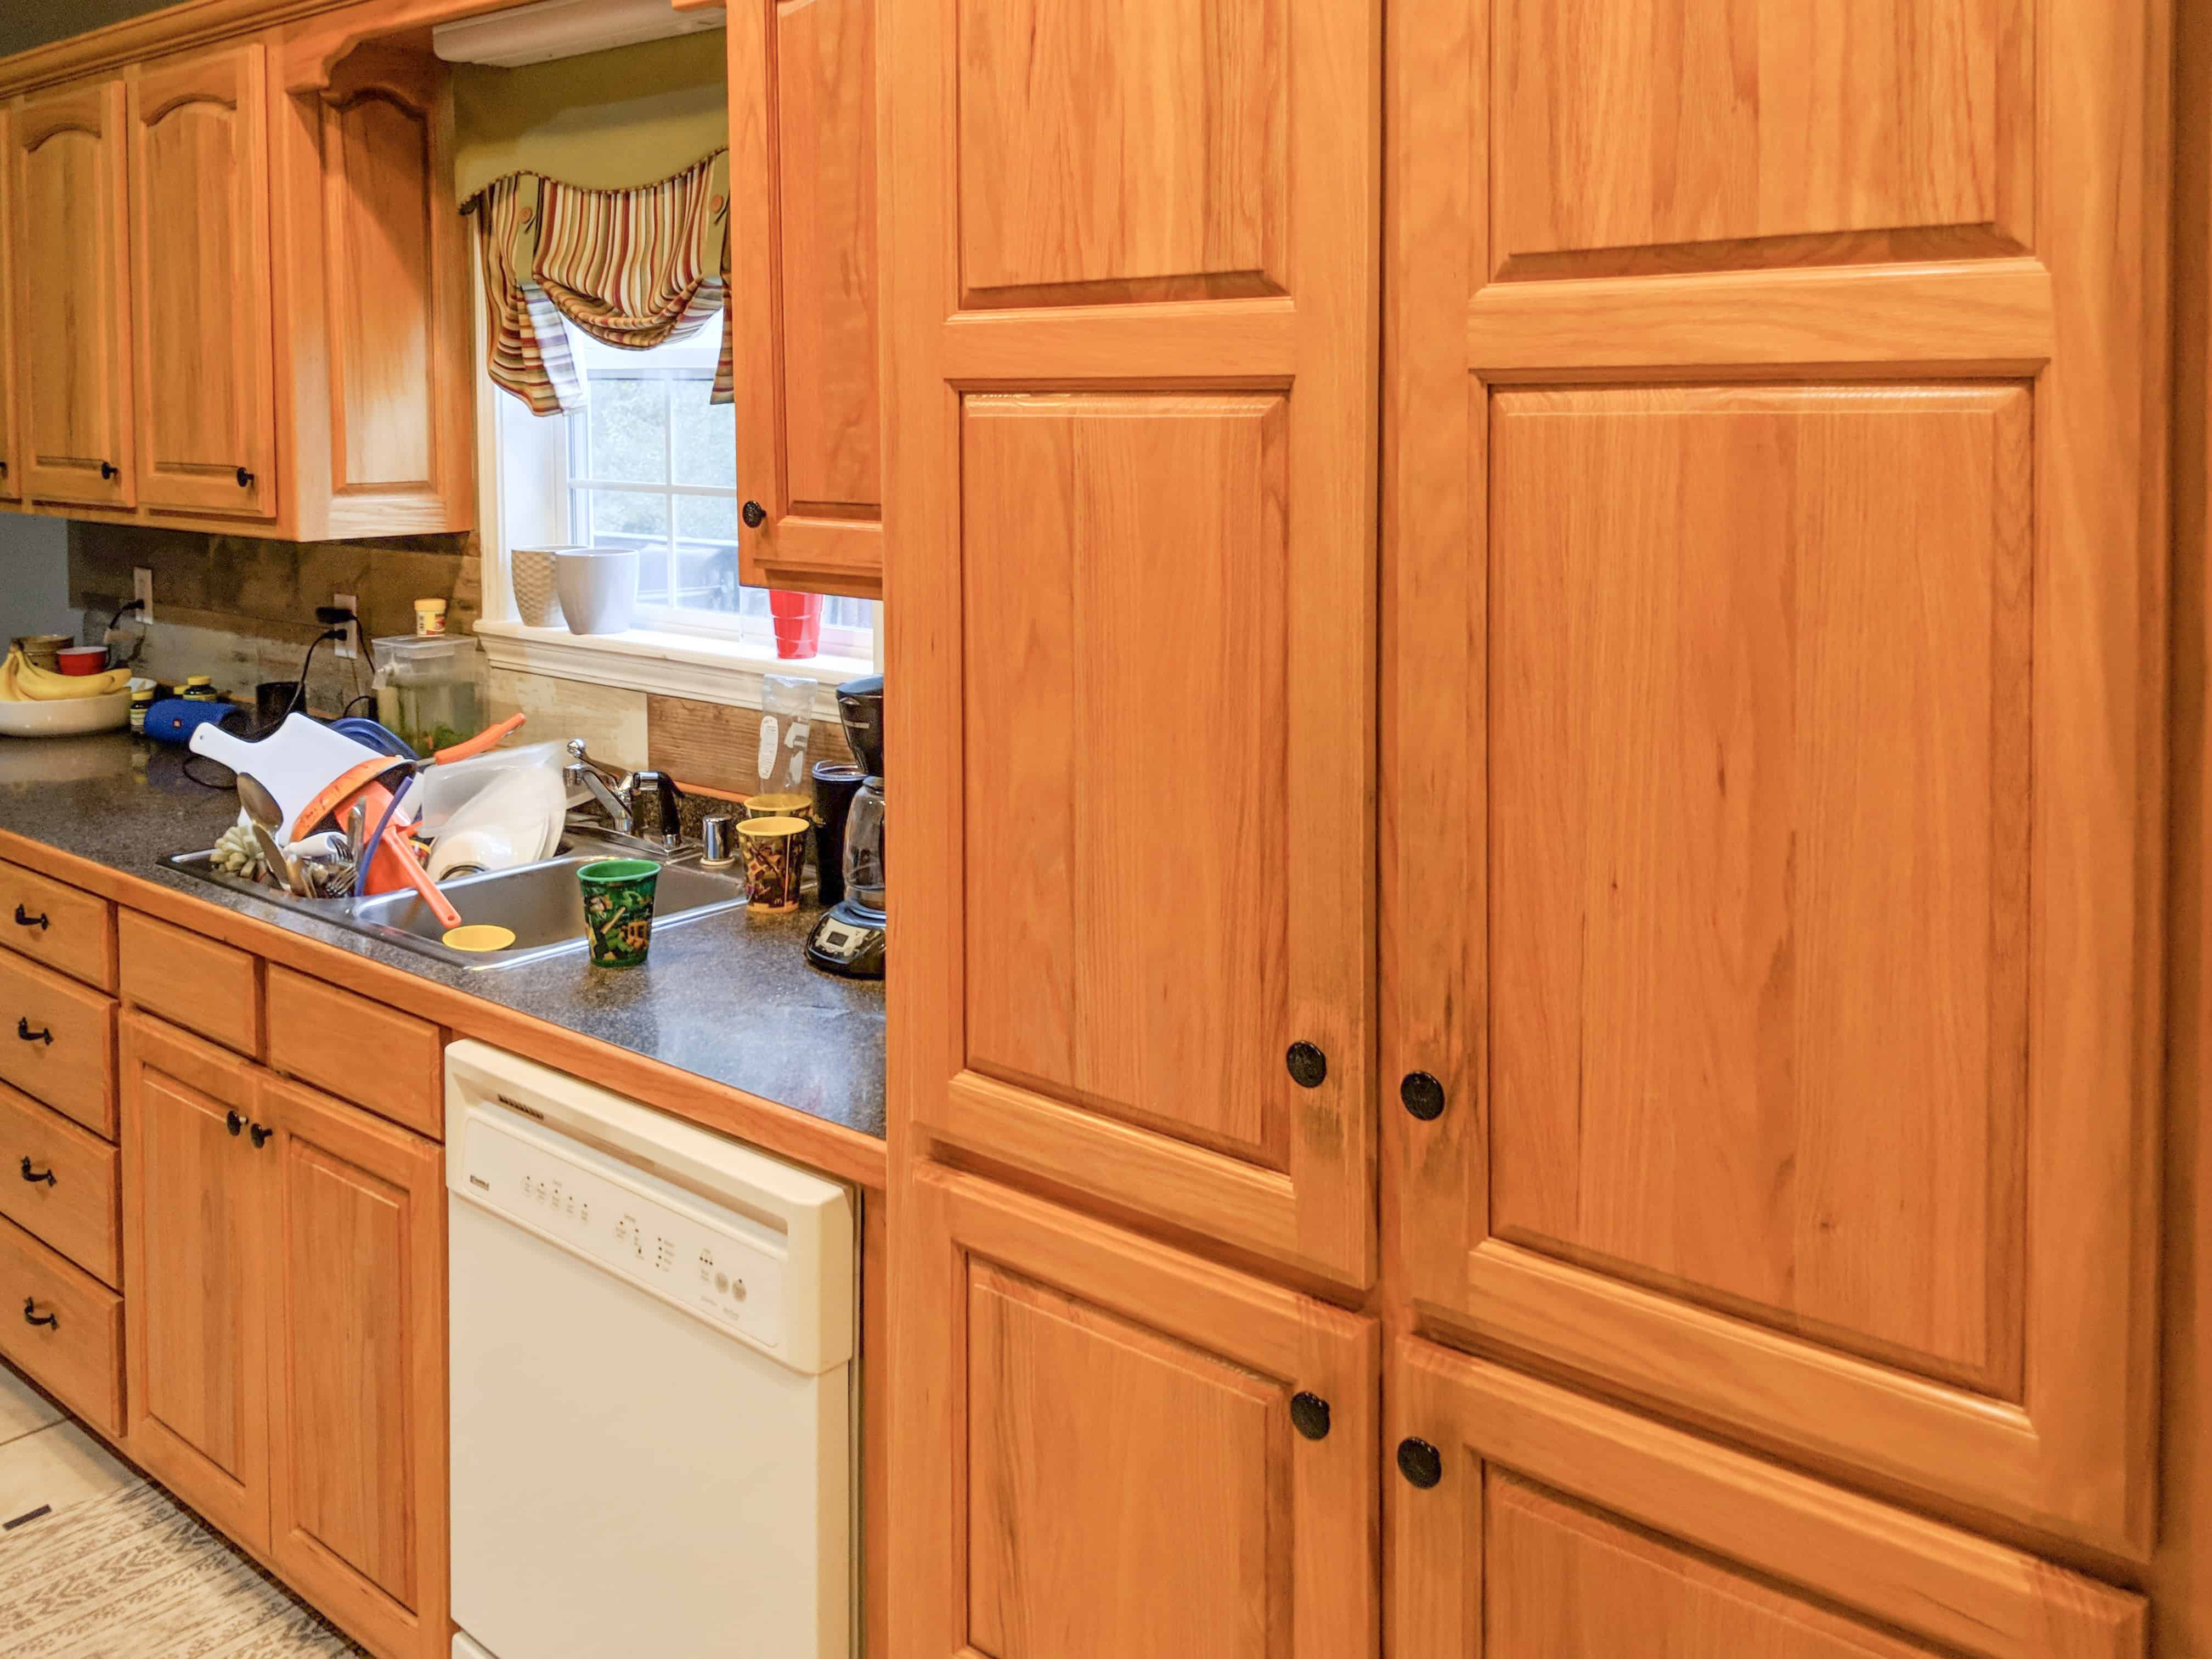 Dark Brown Cabinets Espresso Cabinets Espresso Painted Kitchen Cabinets Dark Brown Stained Kitchen Cabinets Kitchen Cabinets Painted In General Finishes Dark Chocolate How To Paint Cabinets Painting Kitchen Cabinets Can You Use